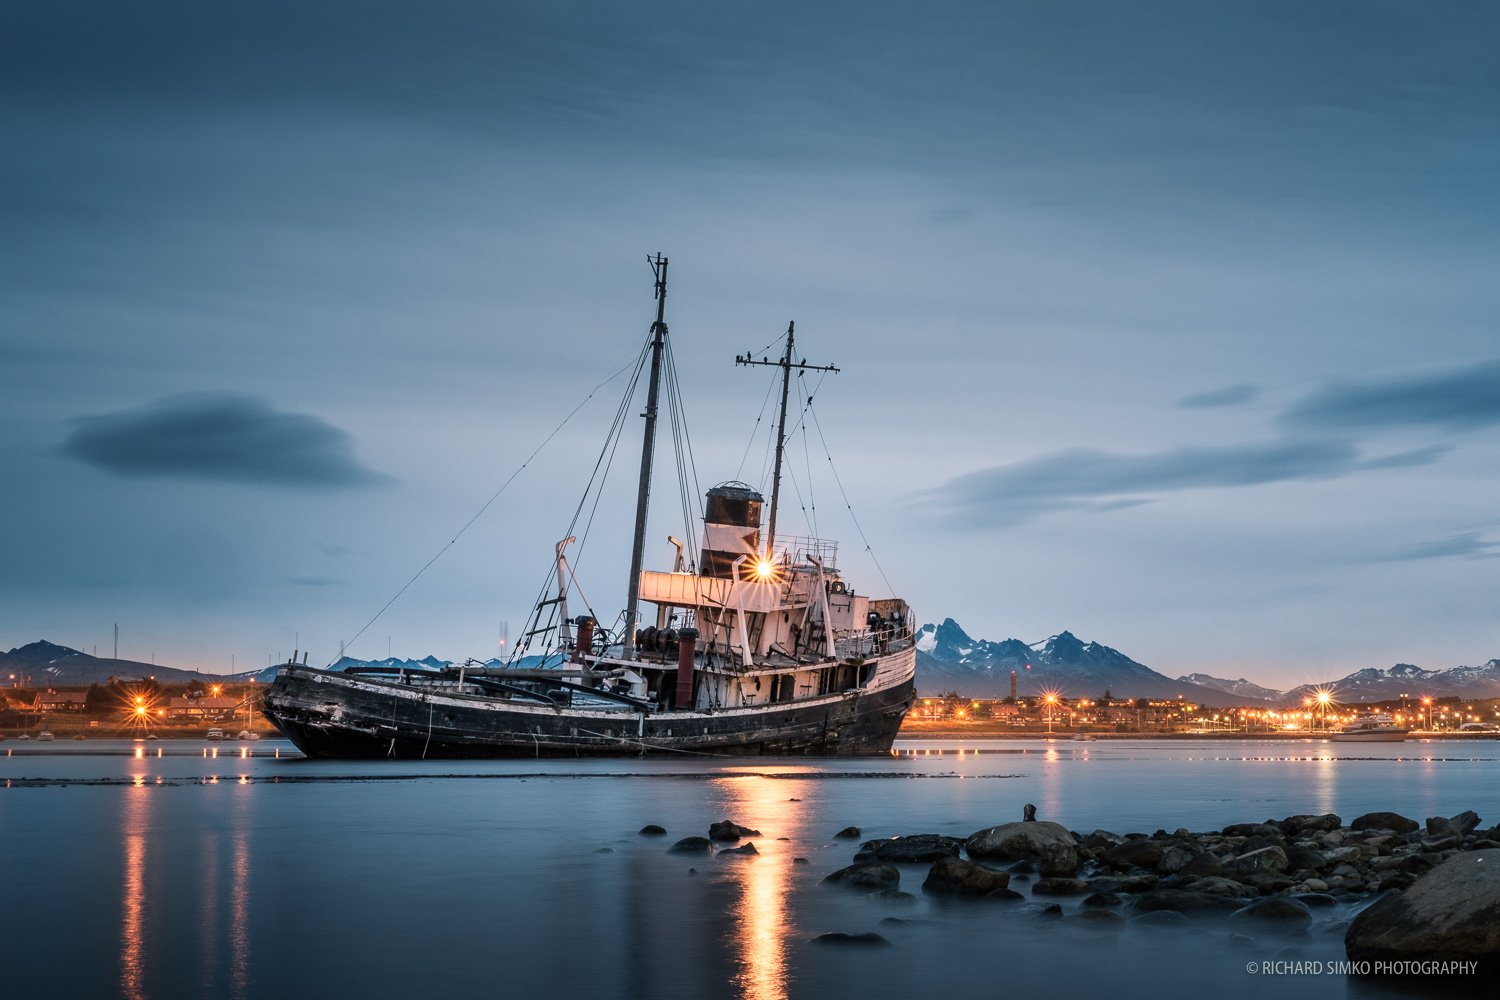 St Christopher tug boat stranded on the shores in Ushuaia.